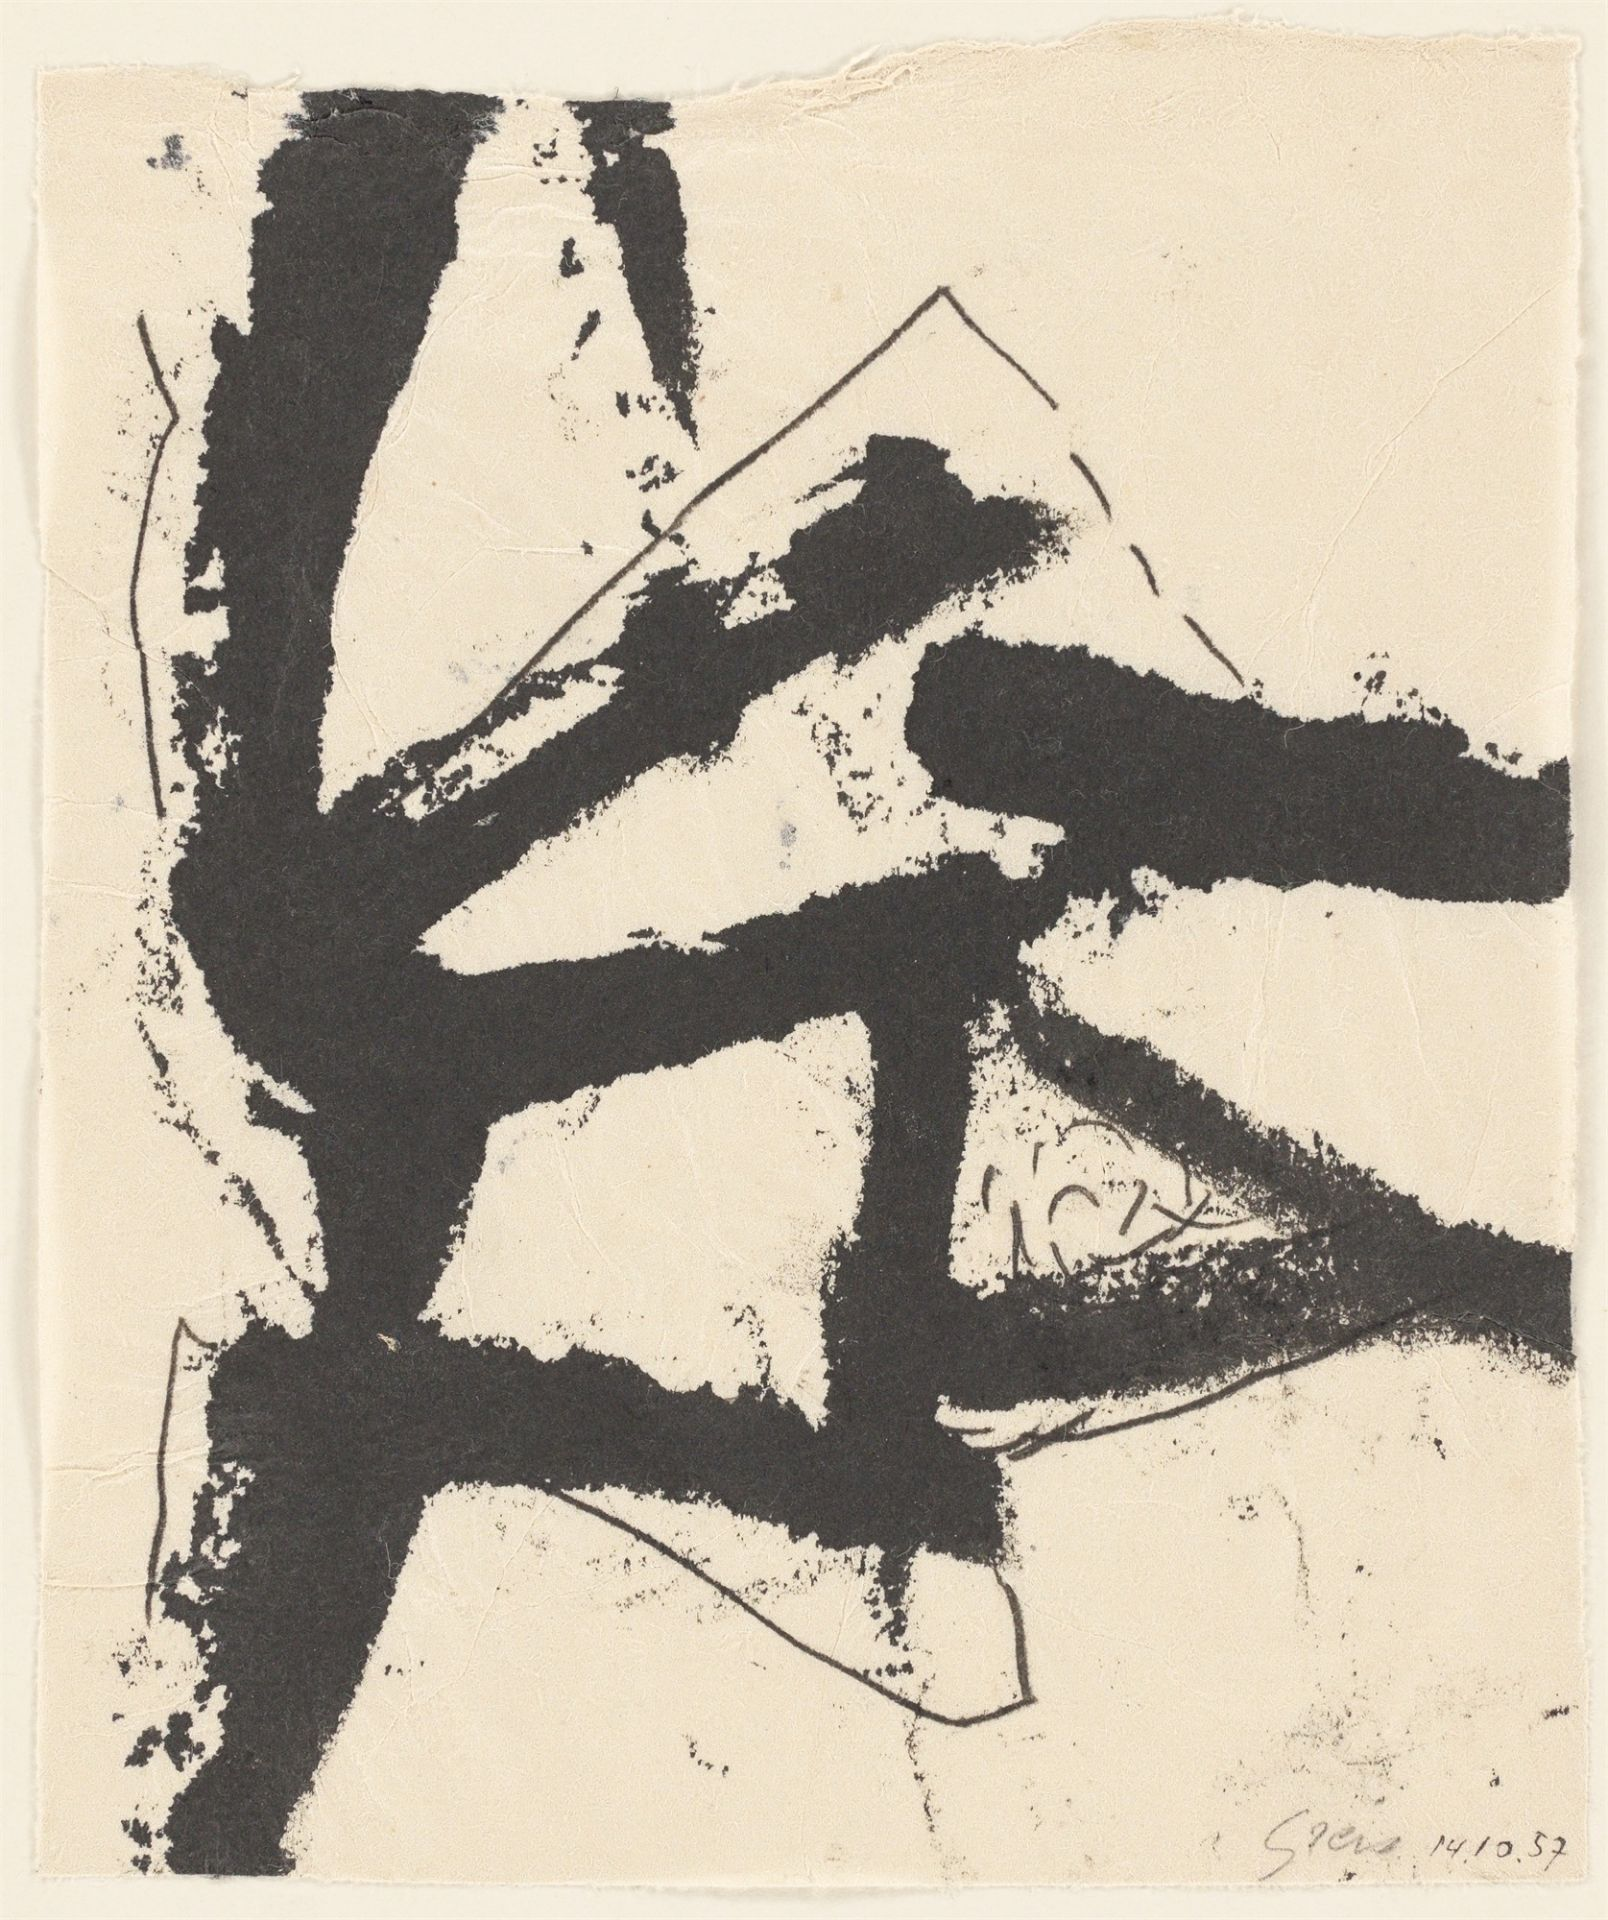 Otto Greis. Untitled. 1957 - Image 2 of 2